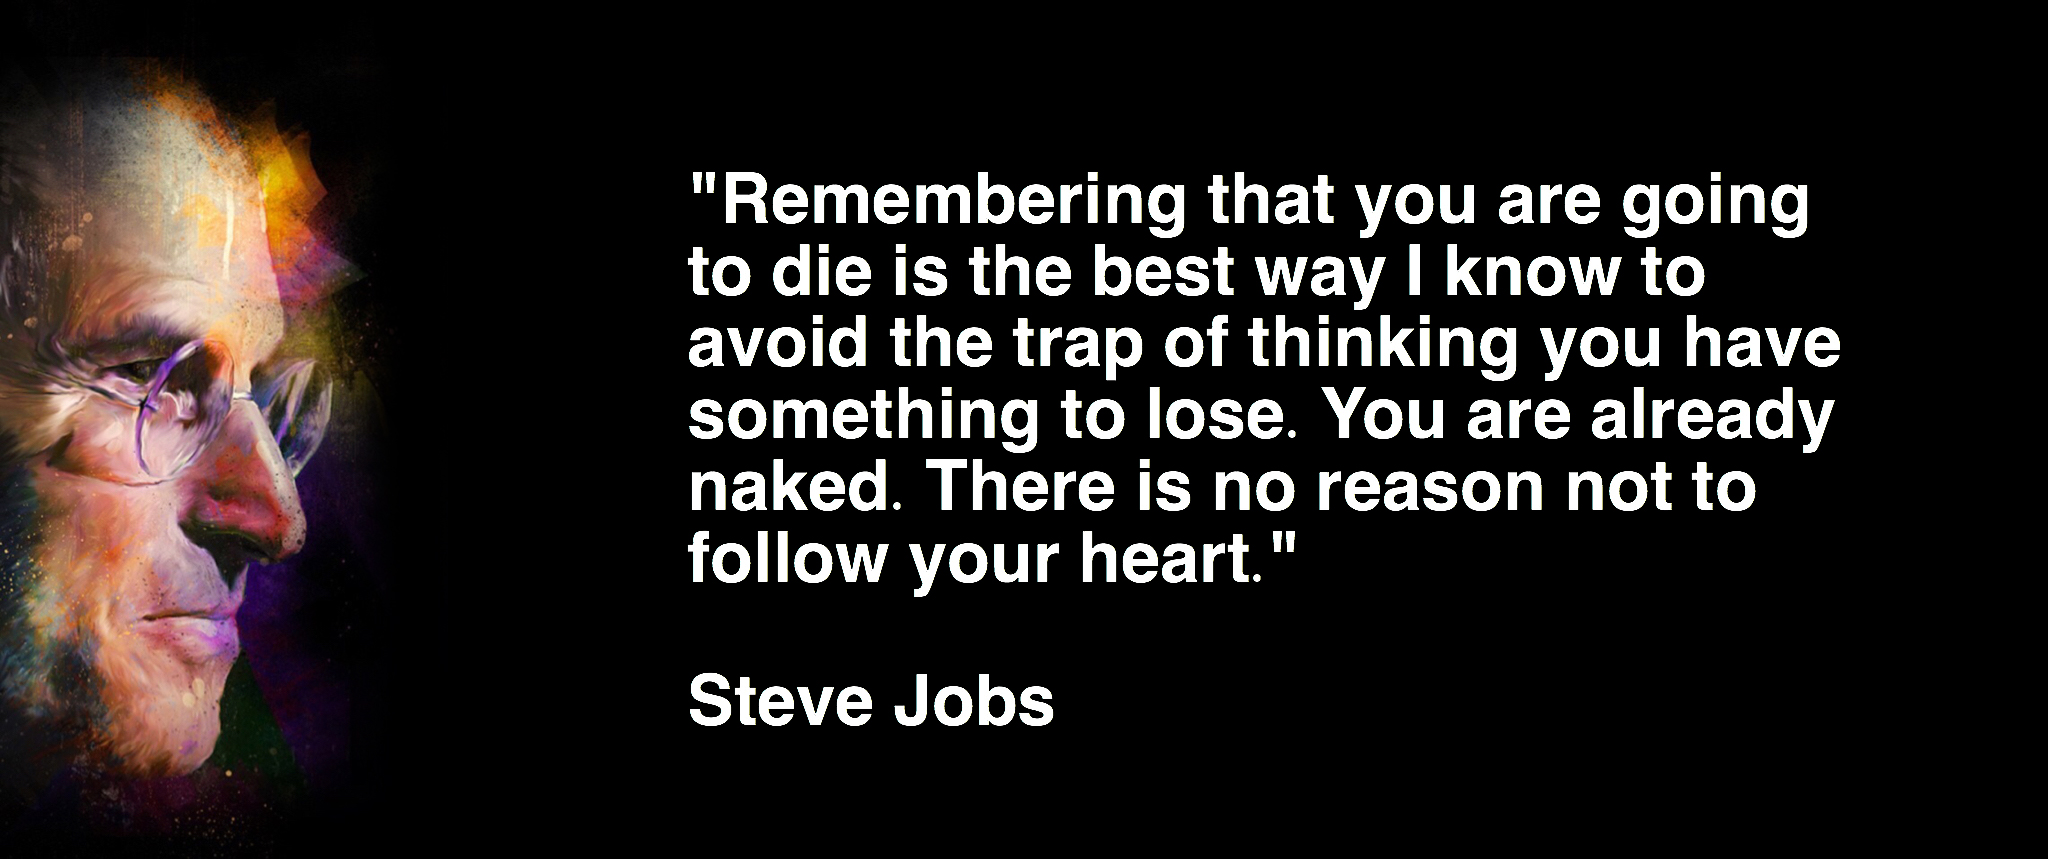 steve-jobs-swat-khan-helloswat-remembering-that-you-are-going-to-die-lose-naked-no-reason-not-to-follow-your-heart